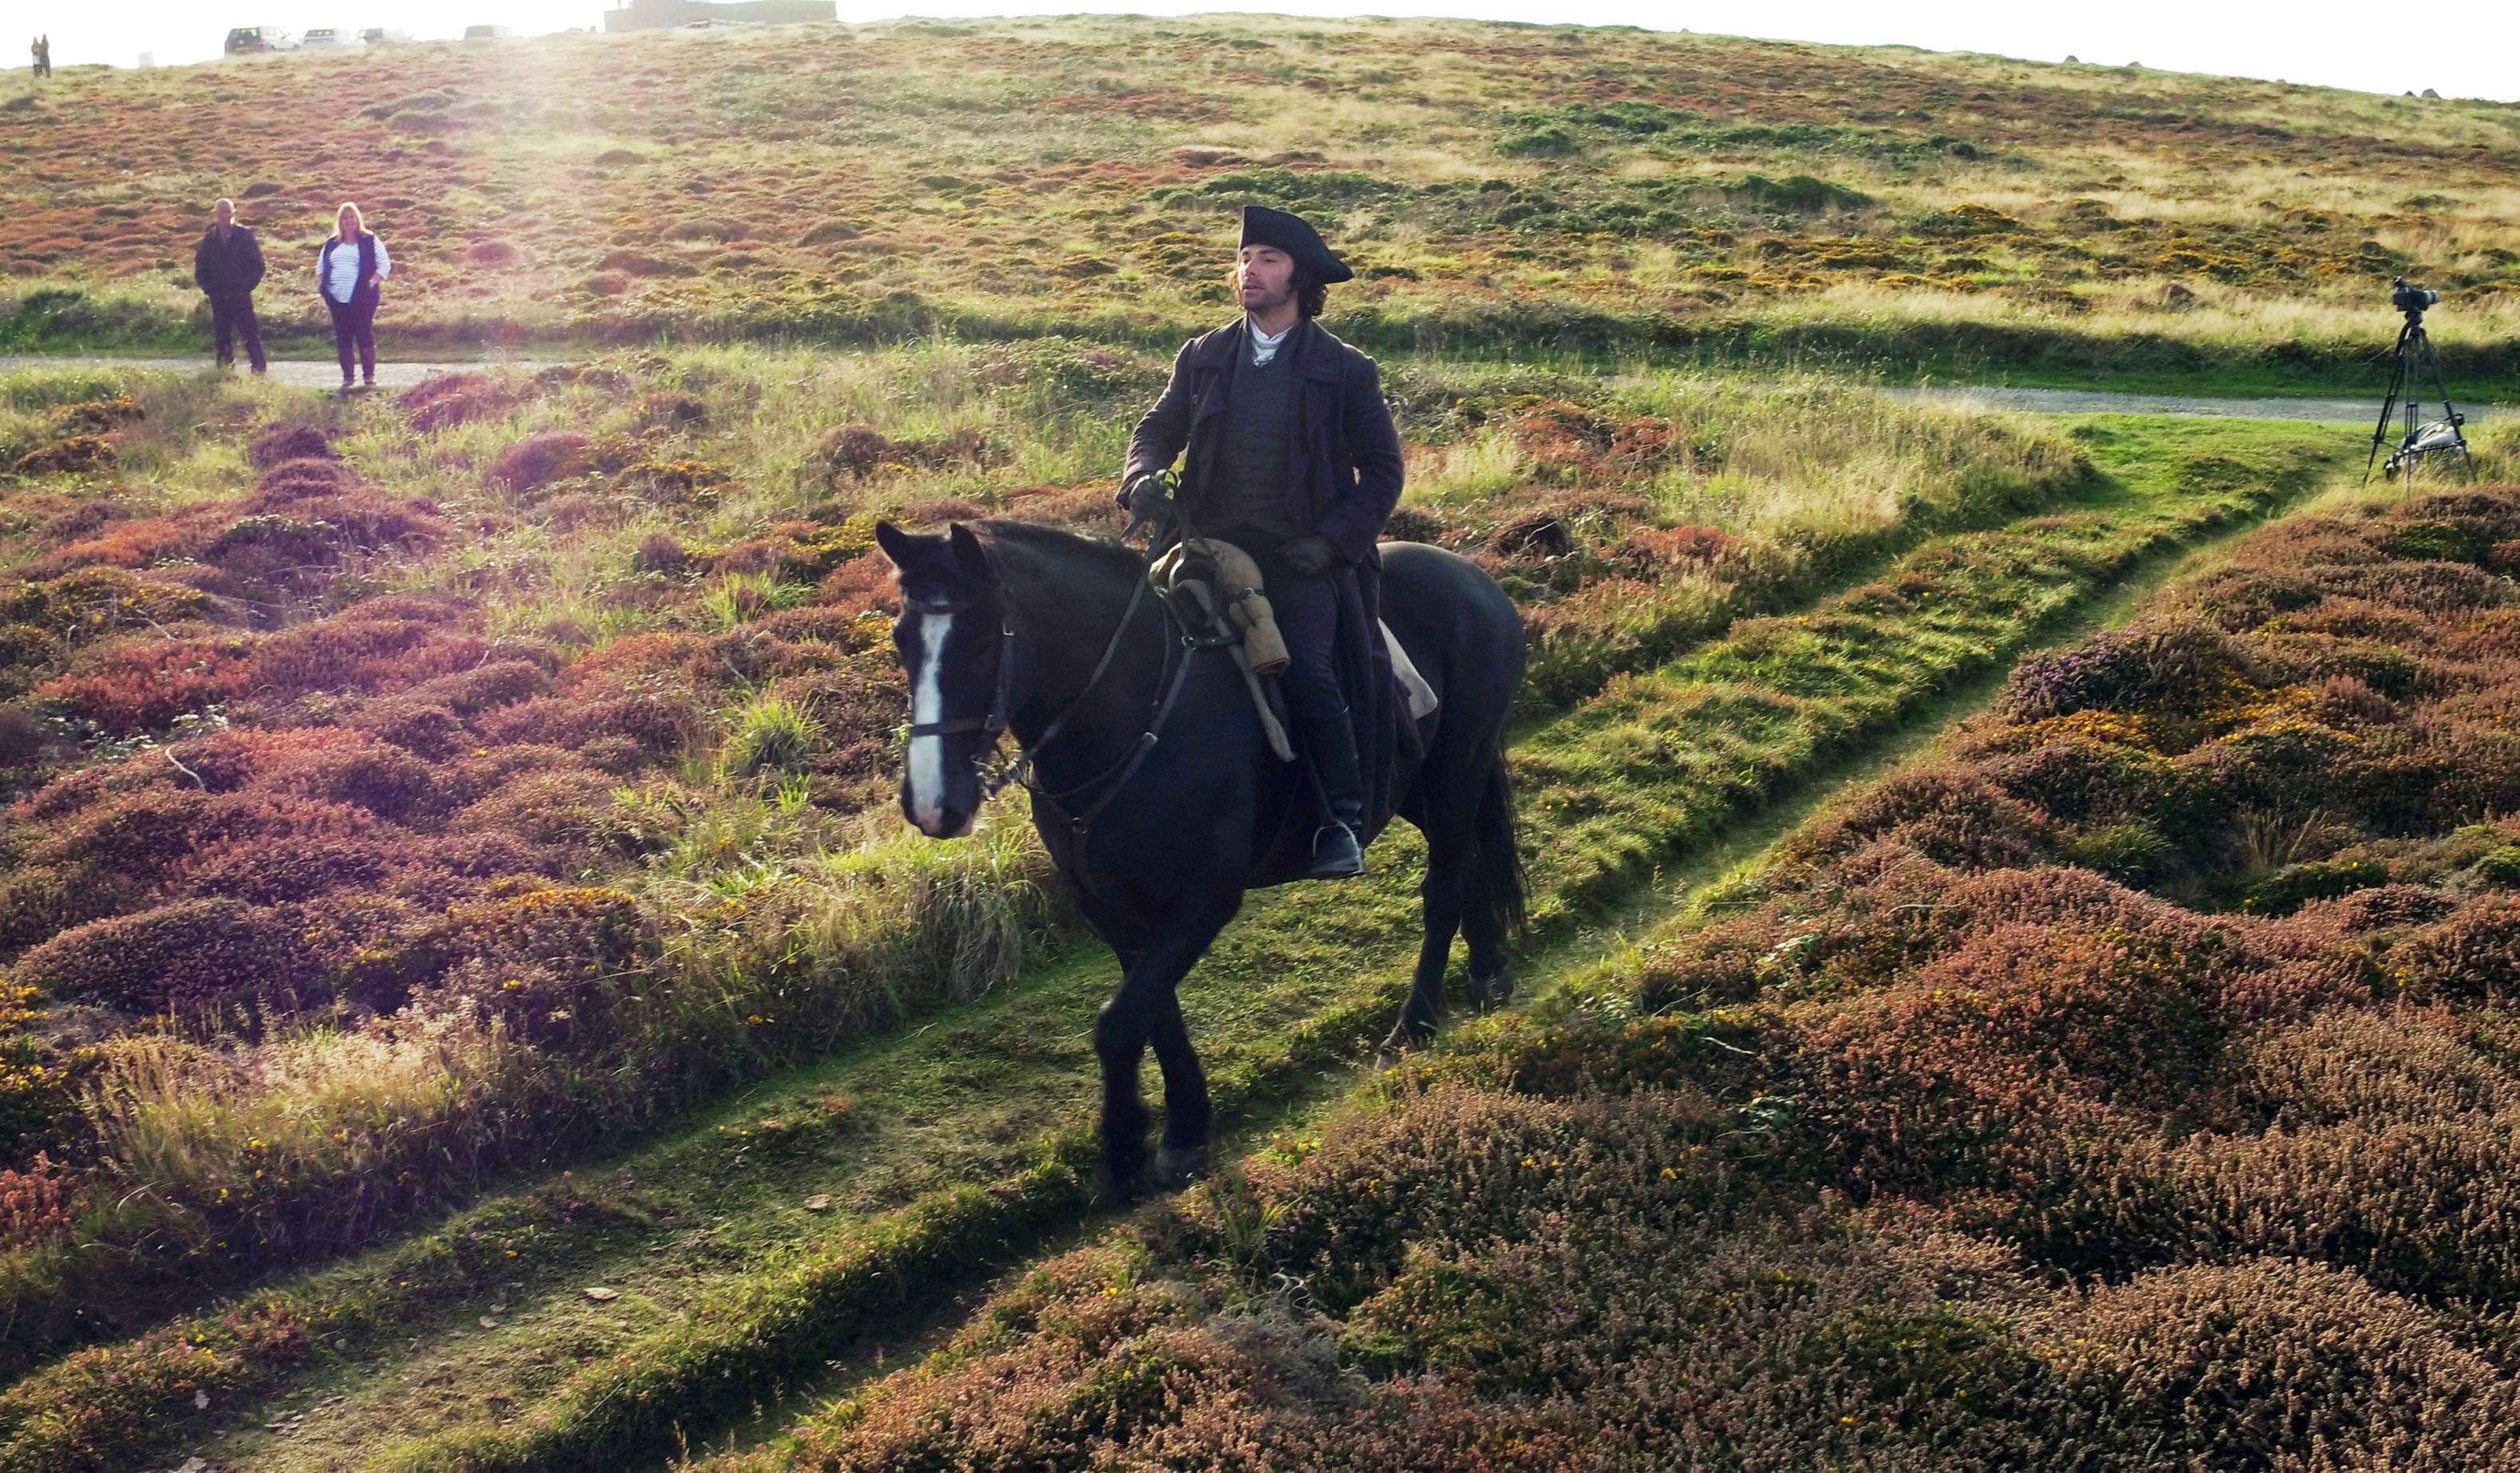 Aidan Turner rides Seamus over heathland on Gwennap Head on the Cornish coast during filming